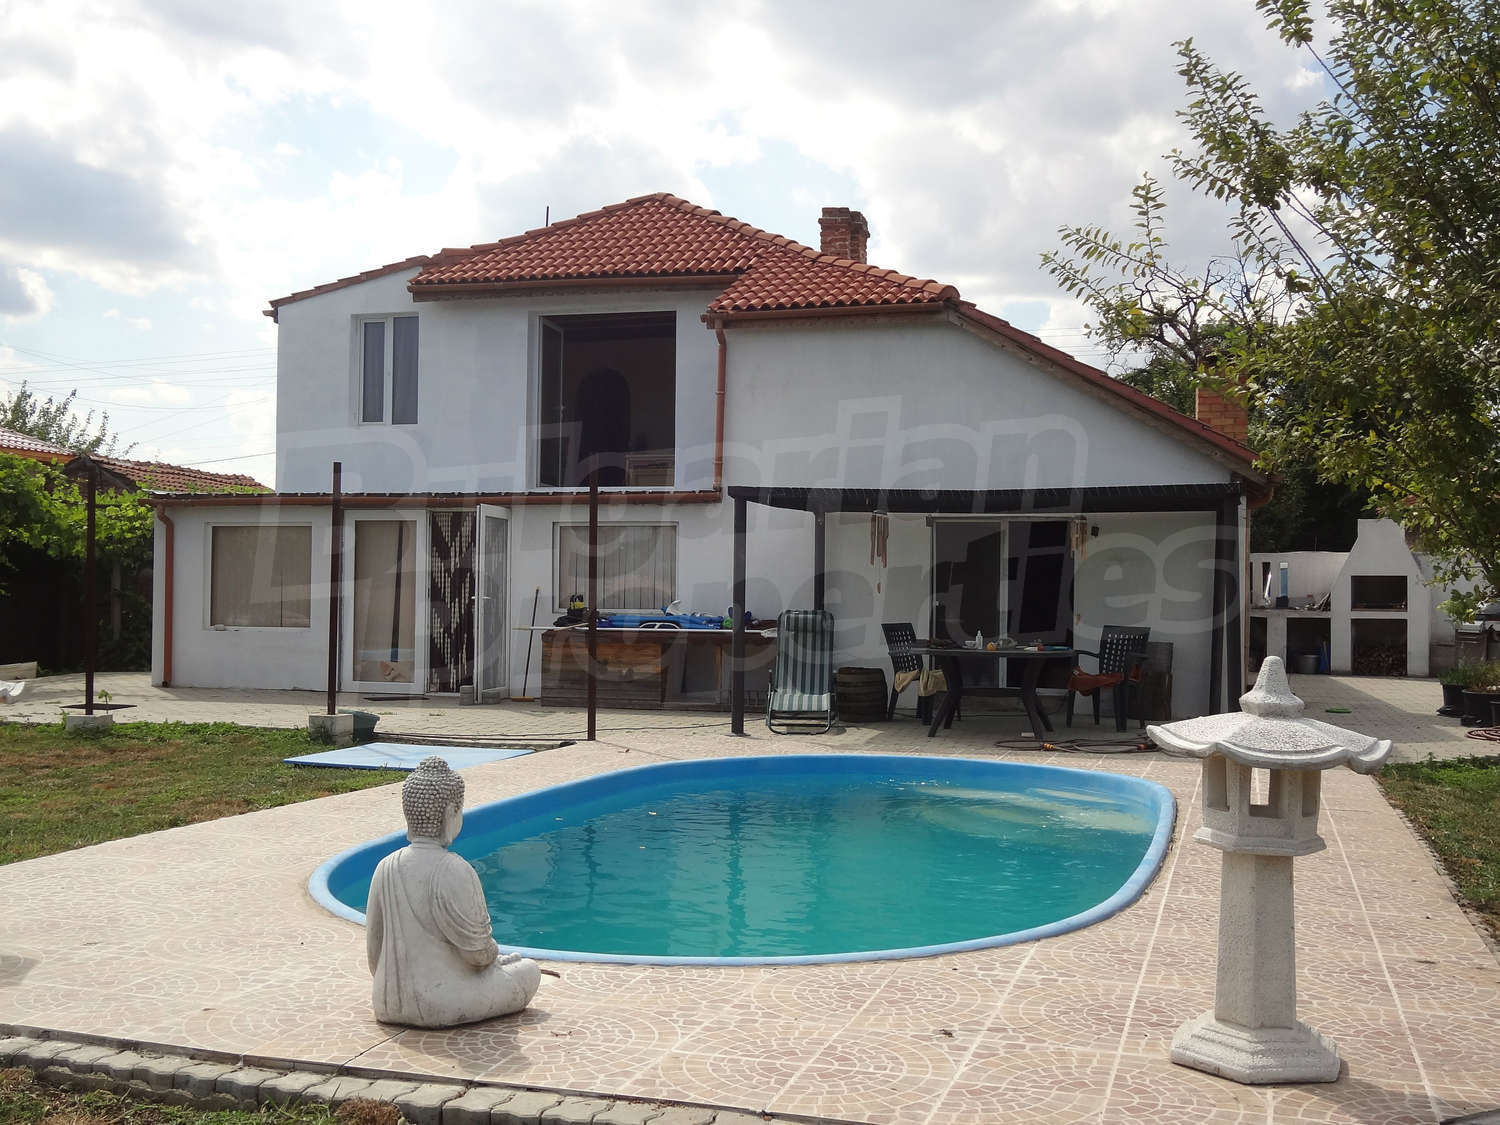 House for sale near burgas bulgaria renovated 2 storey for Big house for sale with swimming pool